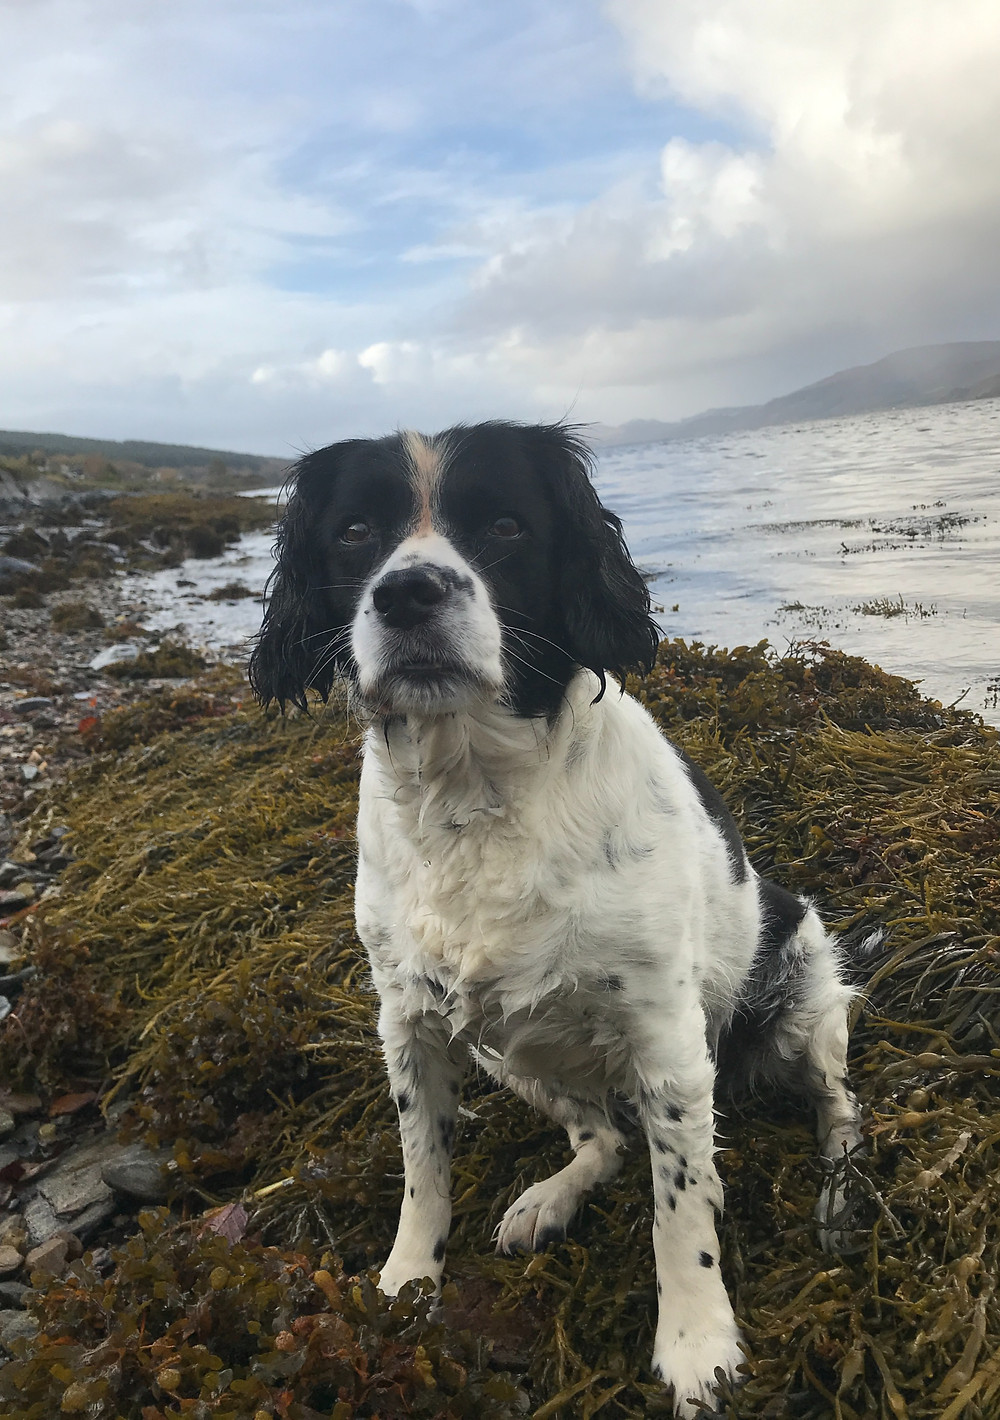 Our Springer Spaniel Crystal on the shore of Loch Fyne at Strachur, part of the crew on Fyne Explorer